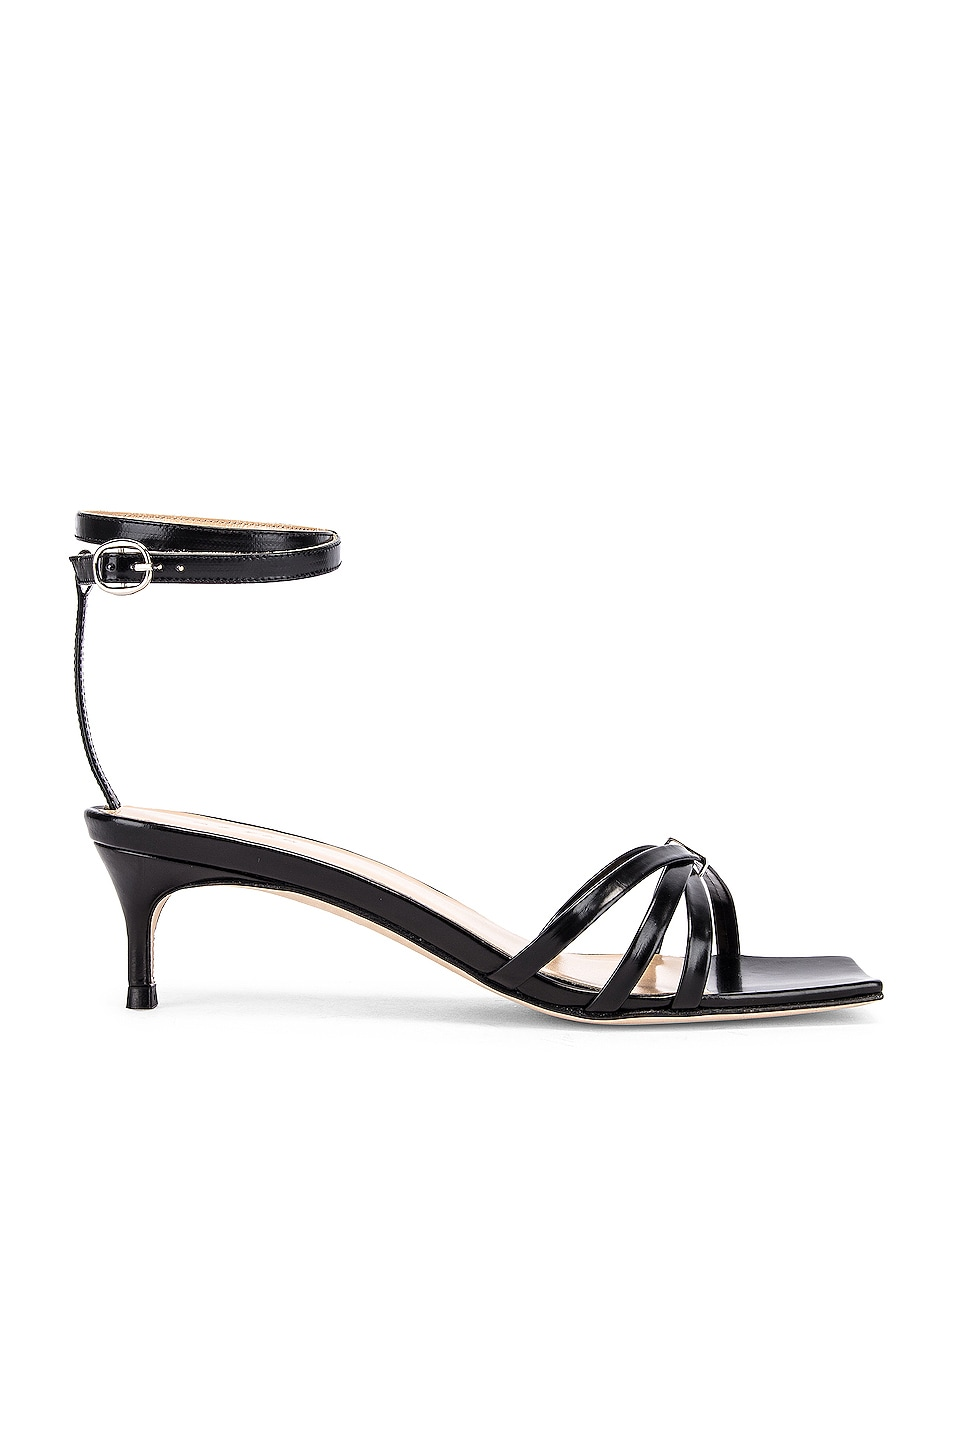 Image 1 of BY FAR Kaia Semi Patent Leather Sandal in Black